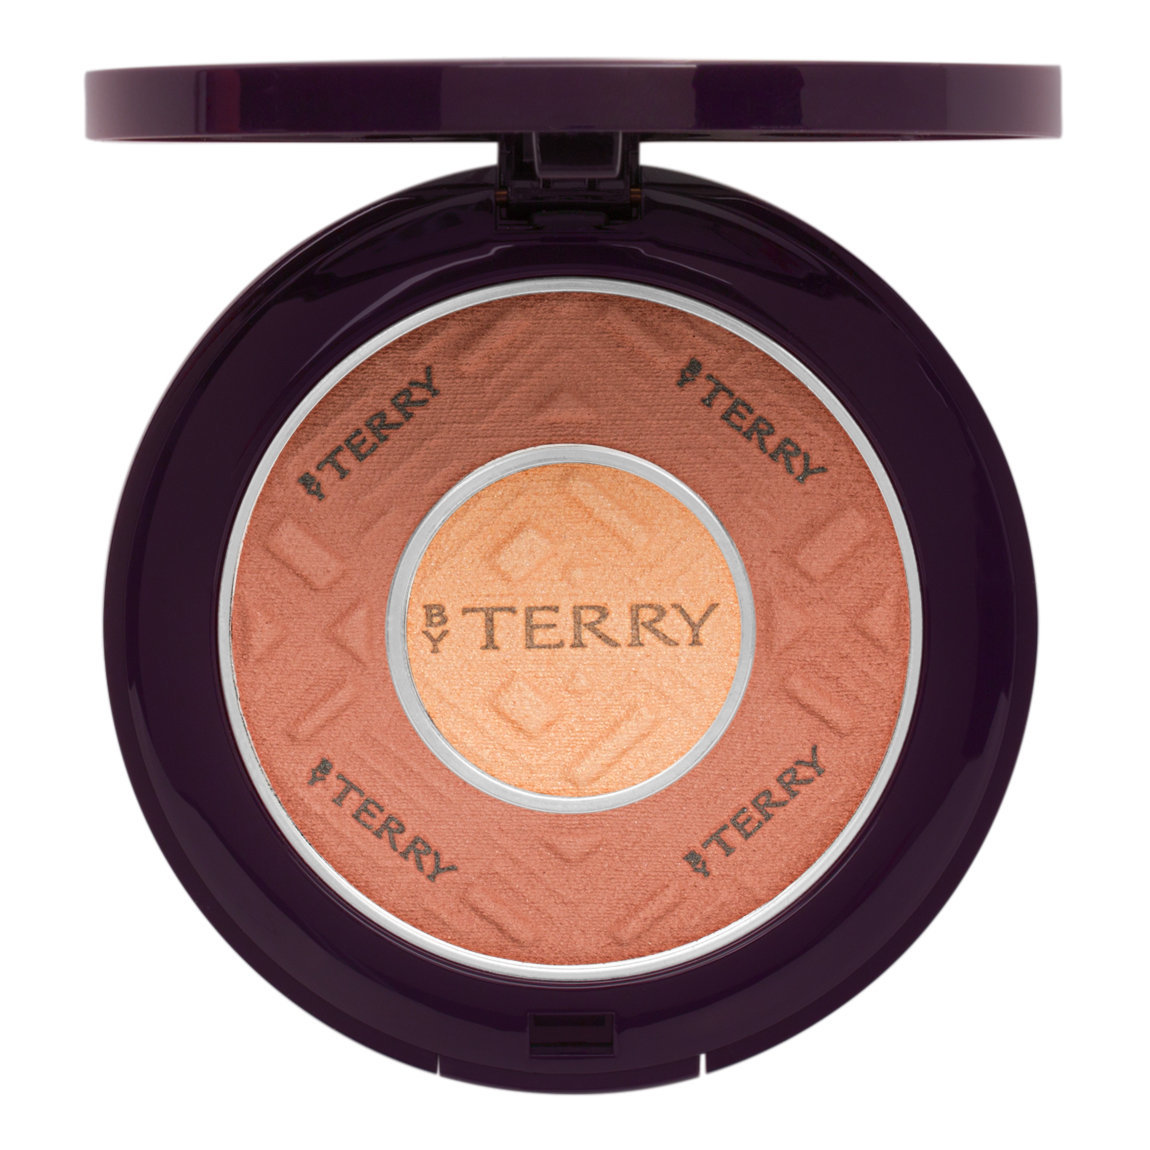 BY TERRY Compact-Expert Dual Powder 6 Choco Vanilla product smear.